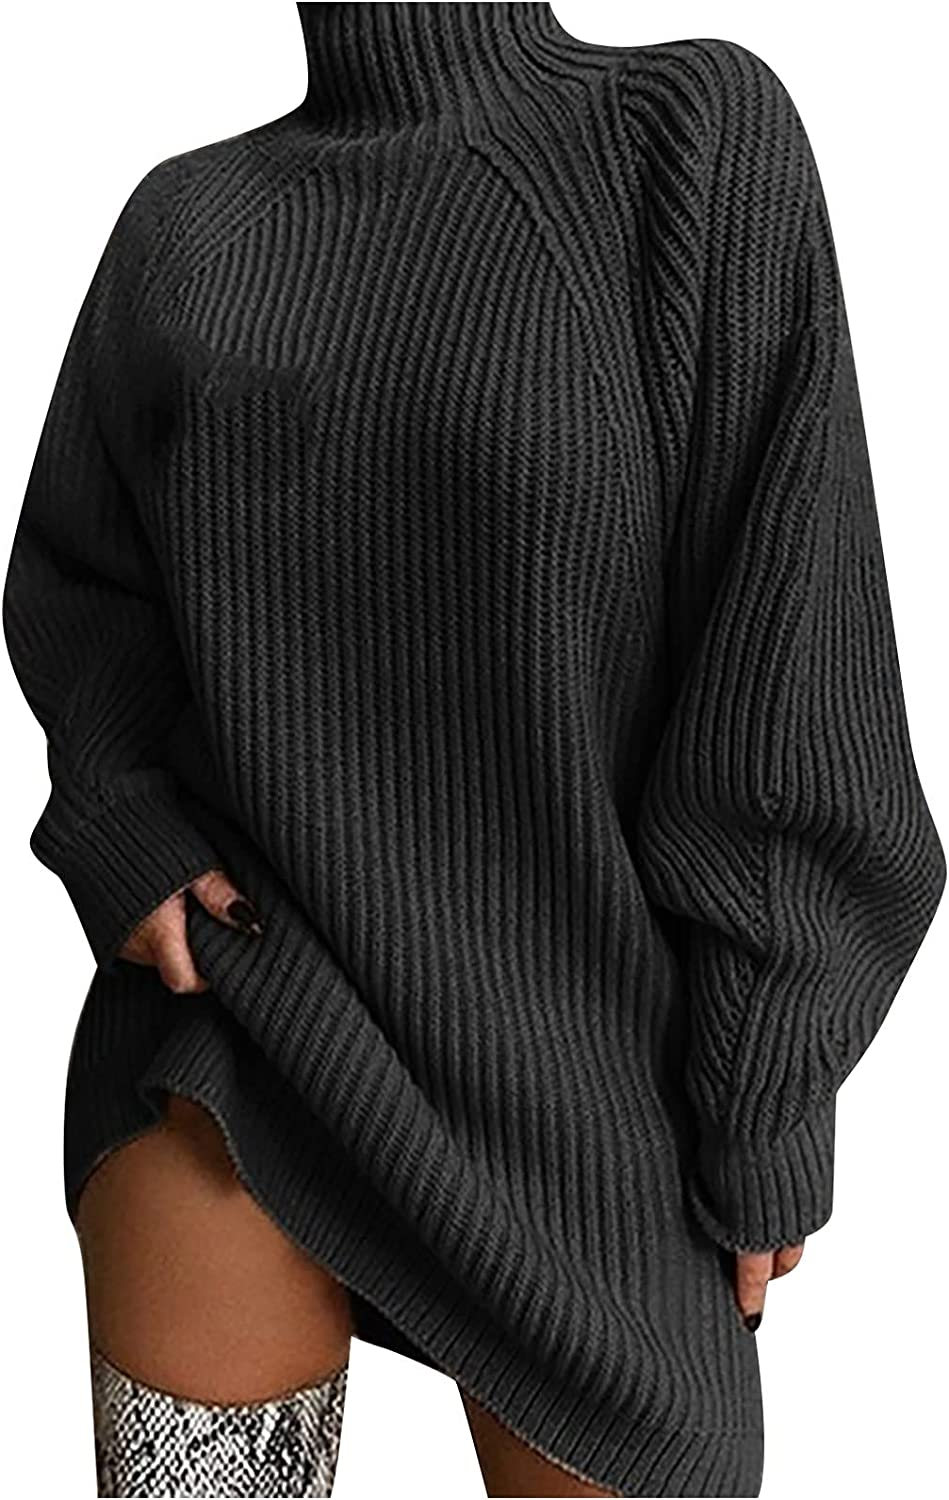 Ribbed Solid Pullover Sweater for Women Lightweight Long-Sleeve Crew Turtleneck Batwing Warm Winter Fall Tunic Tops